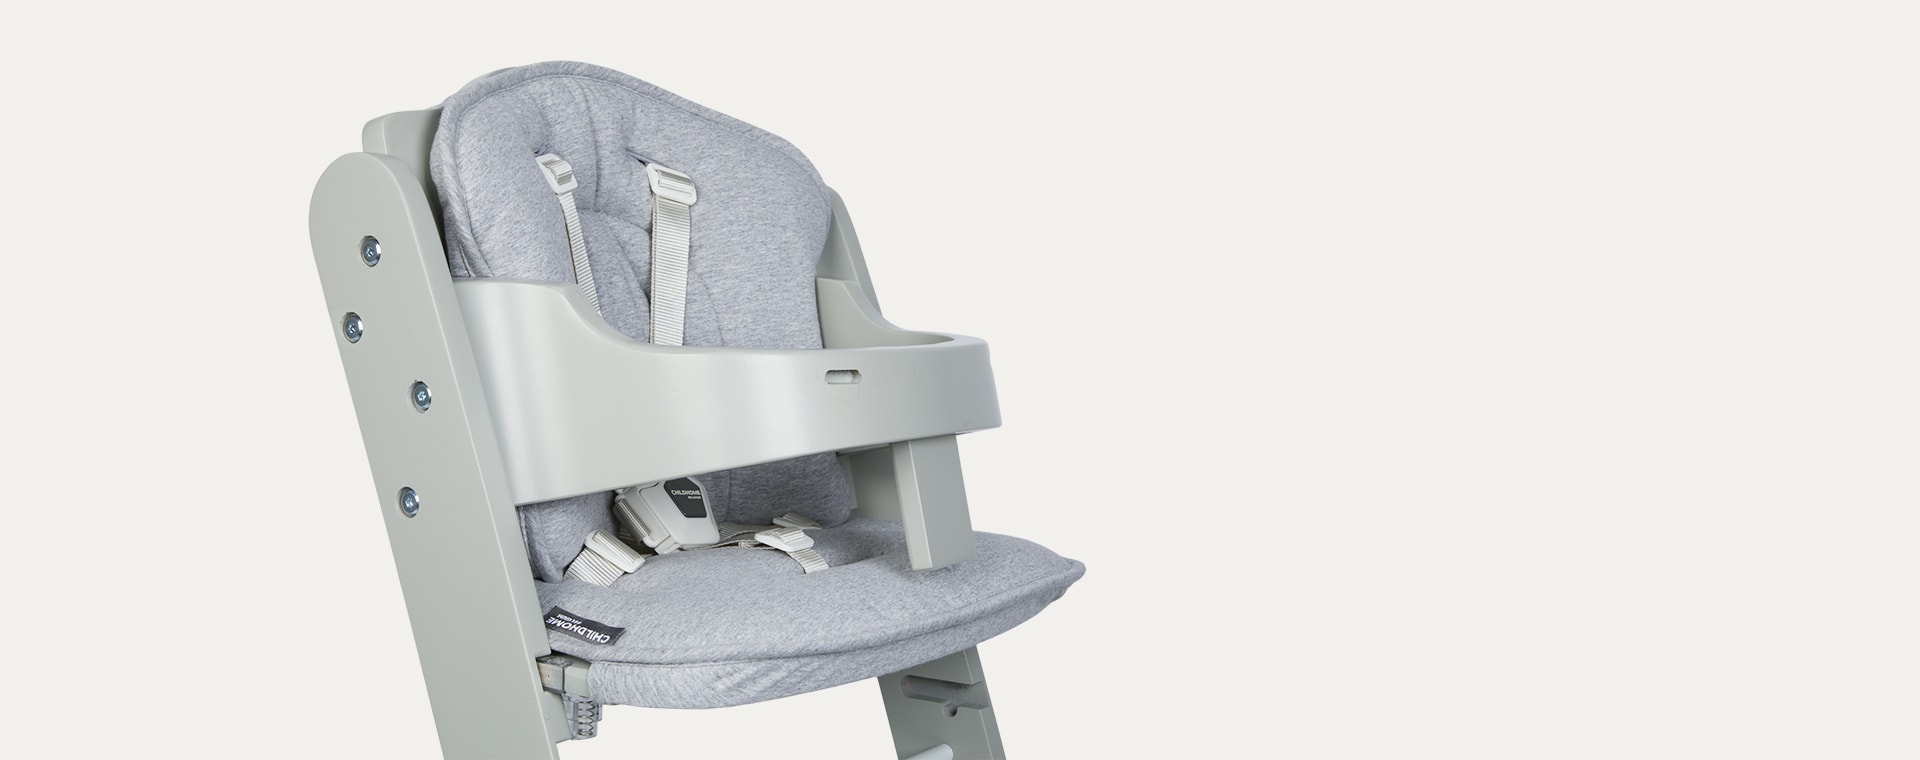 Grey Childhome Baby Grow Chair Cushion